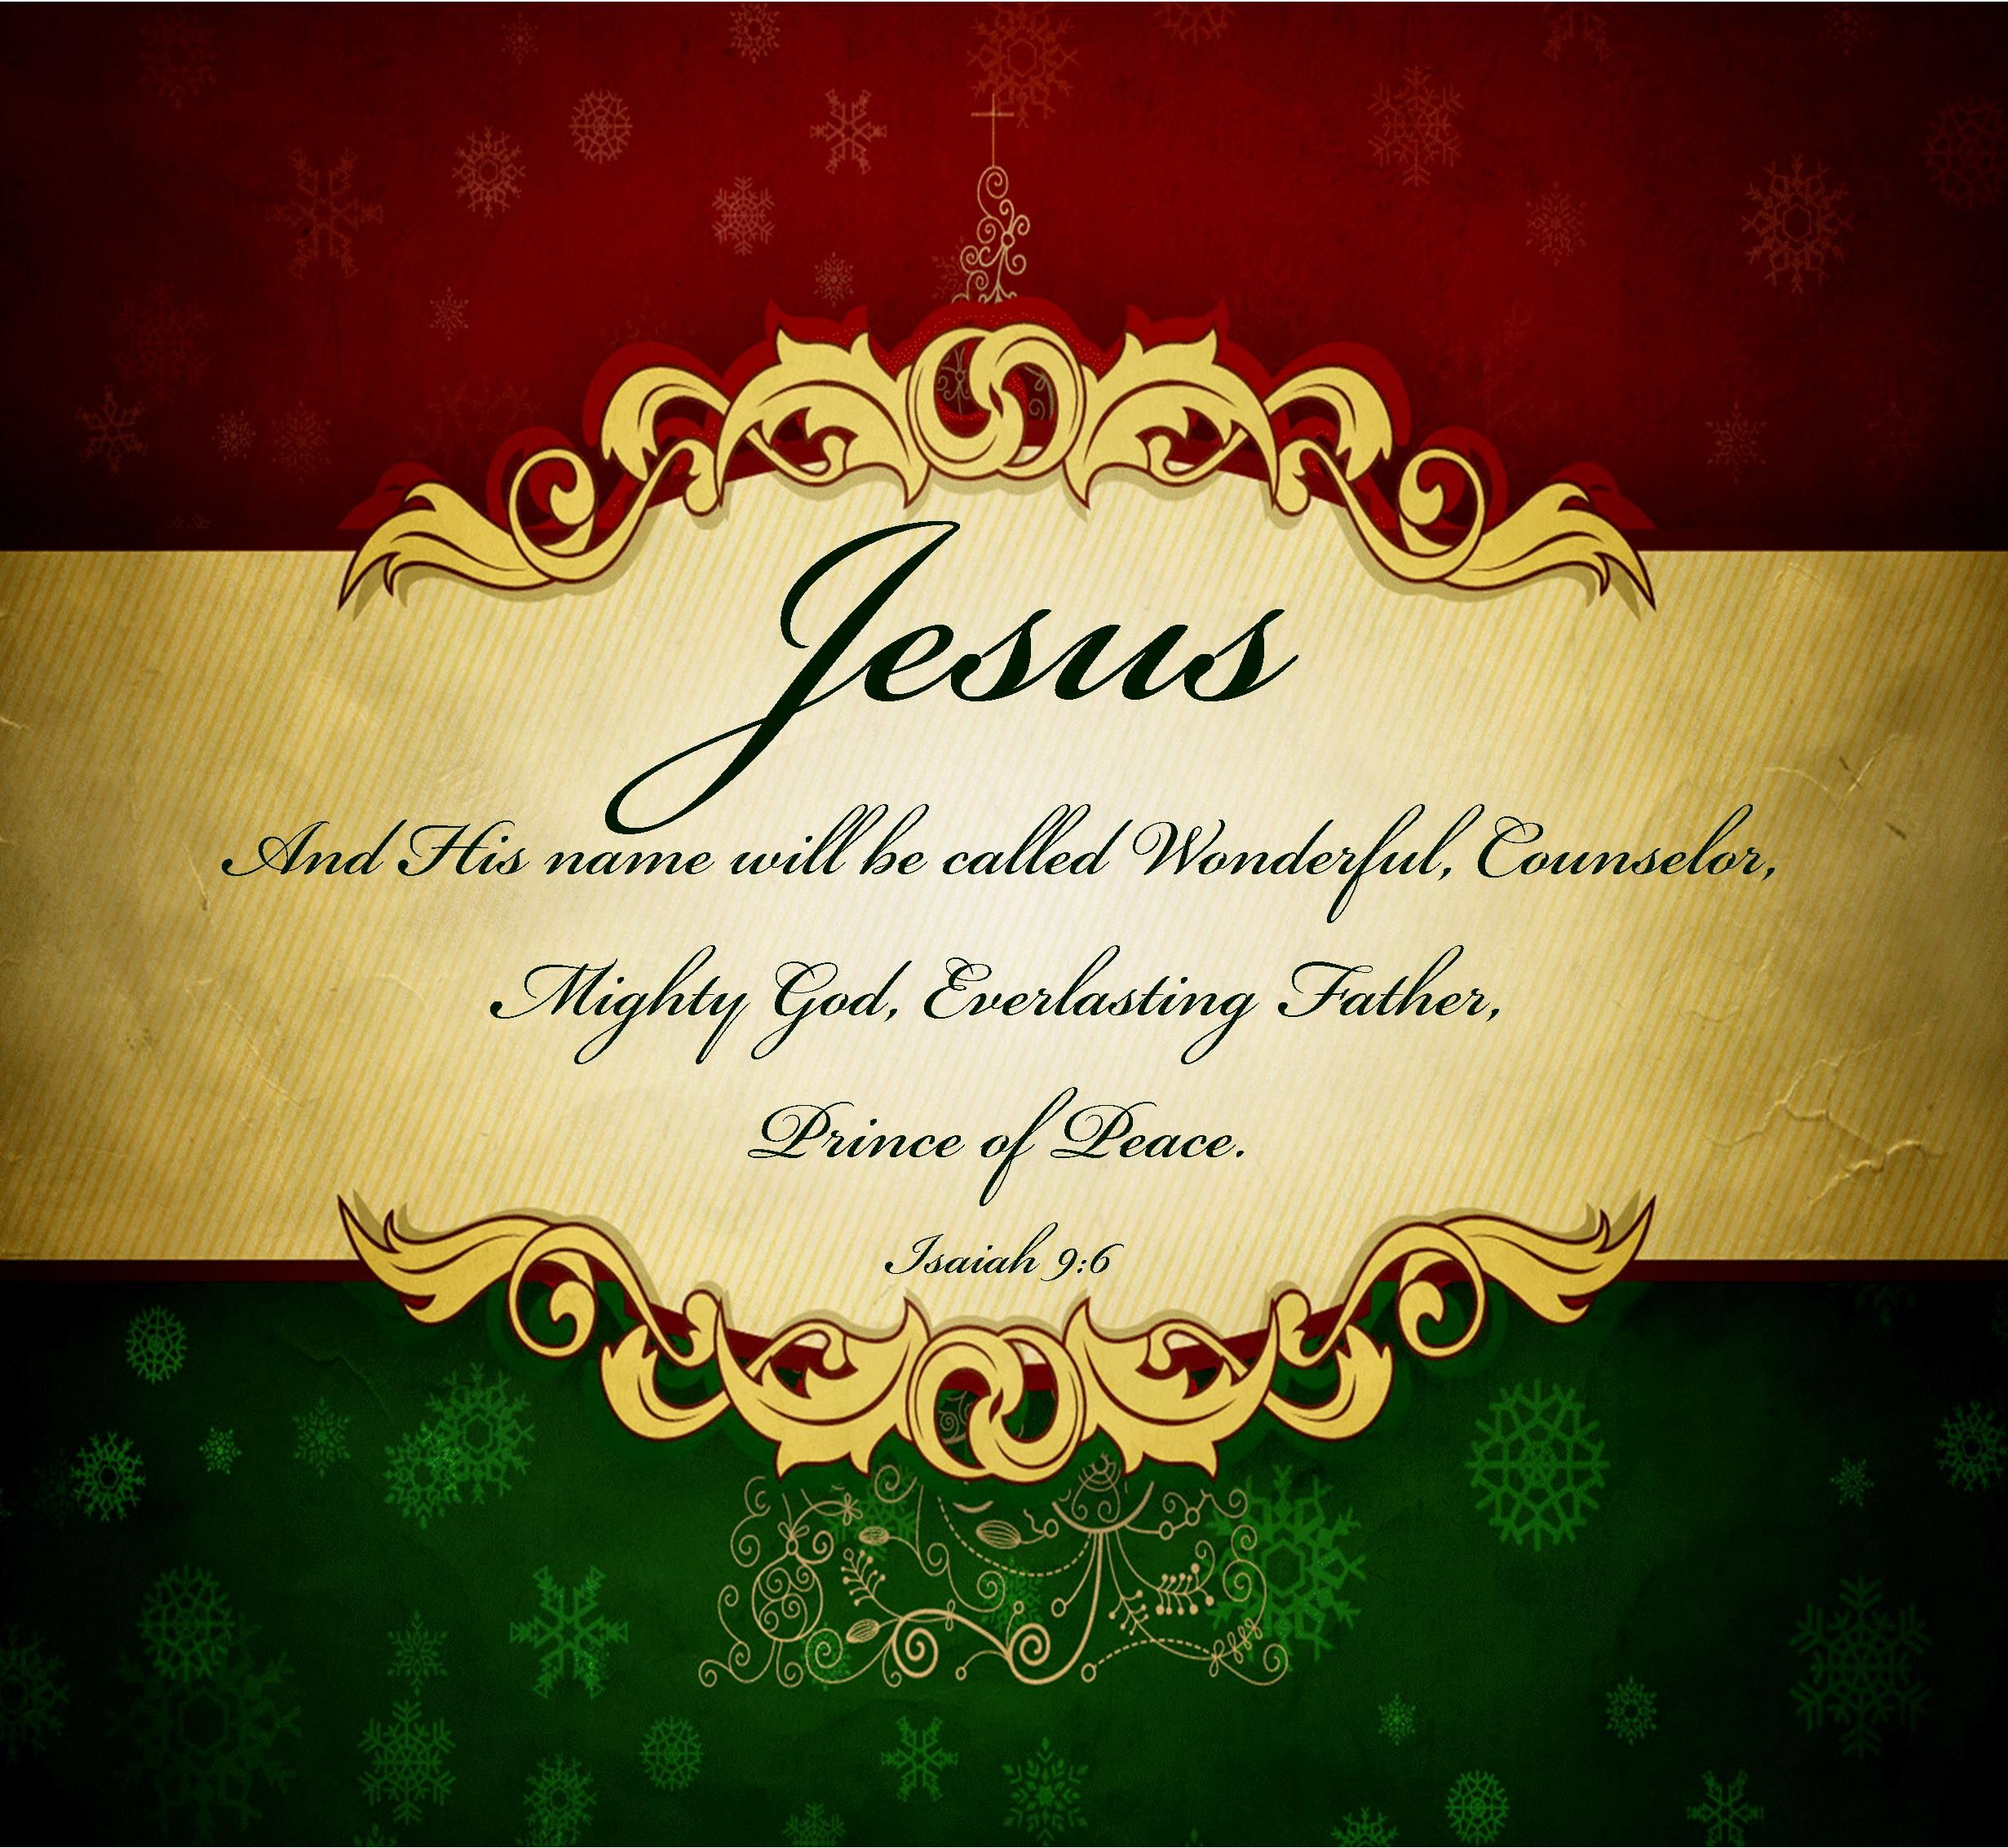 images of scripture | Jesus is My Savior | Pinterest | Christmas ...